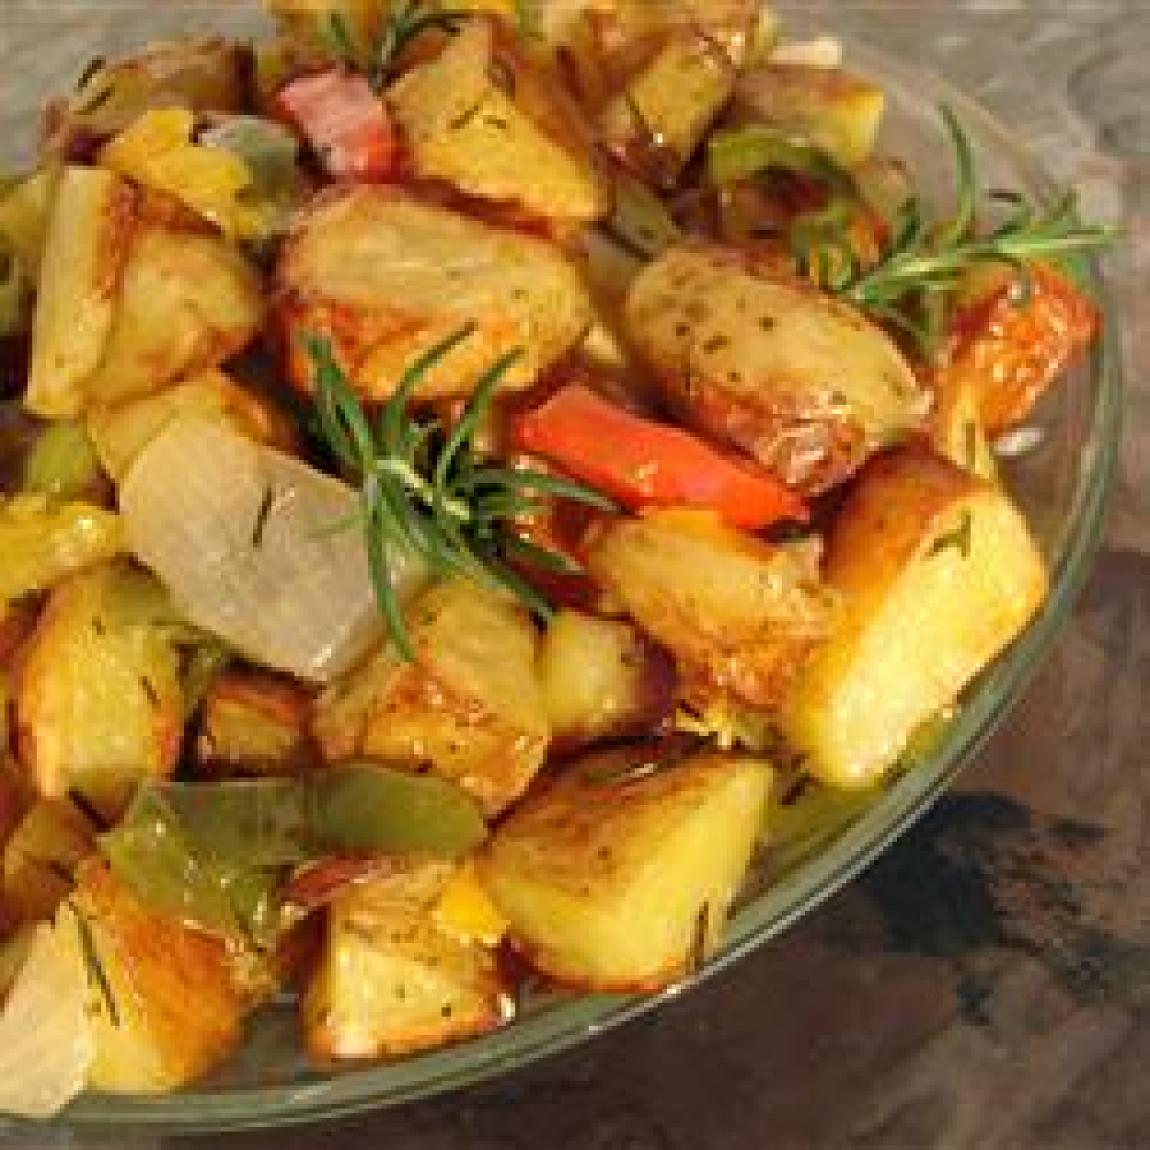 Early Morning Oven Roasted New Potatoes Recipe | Just A Pinch Recipes